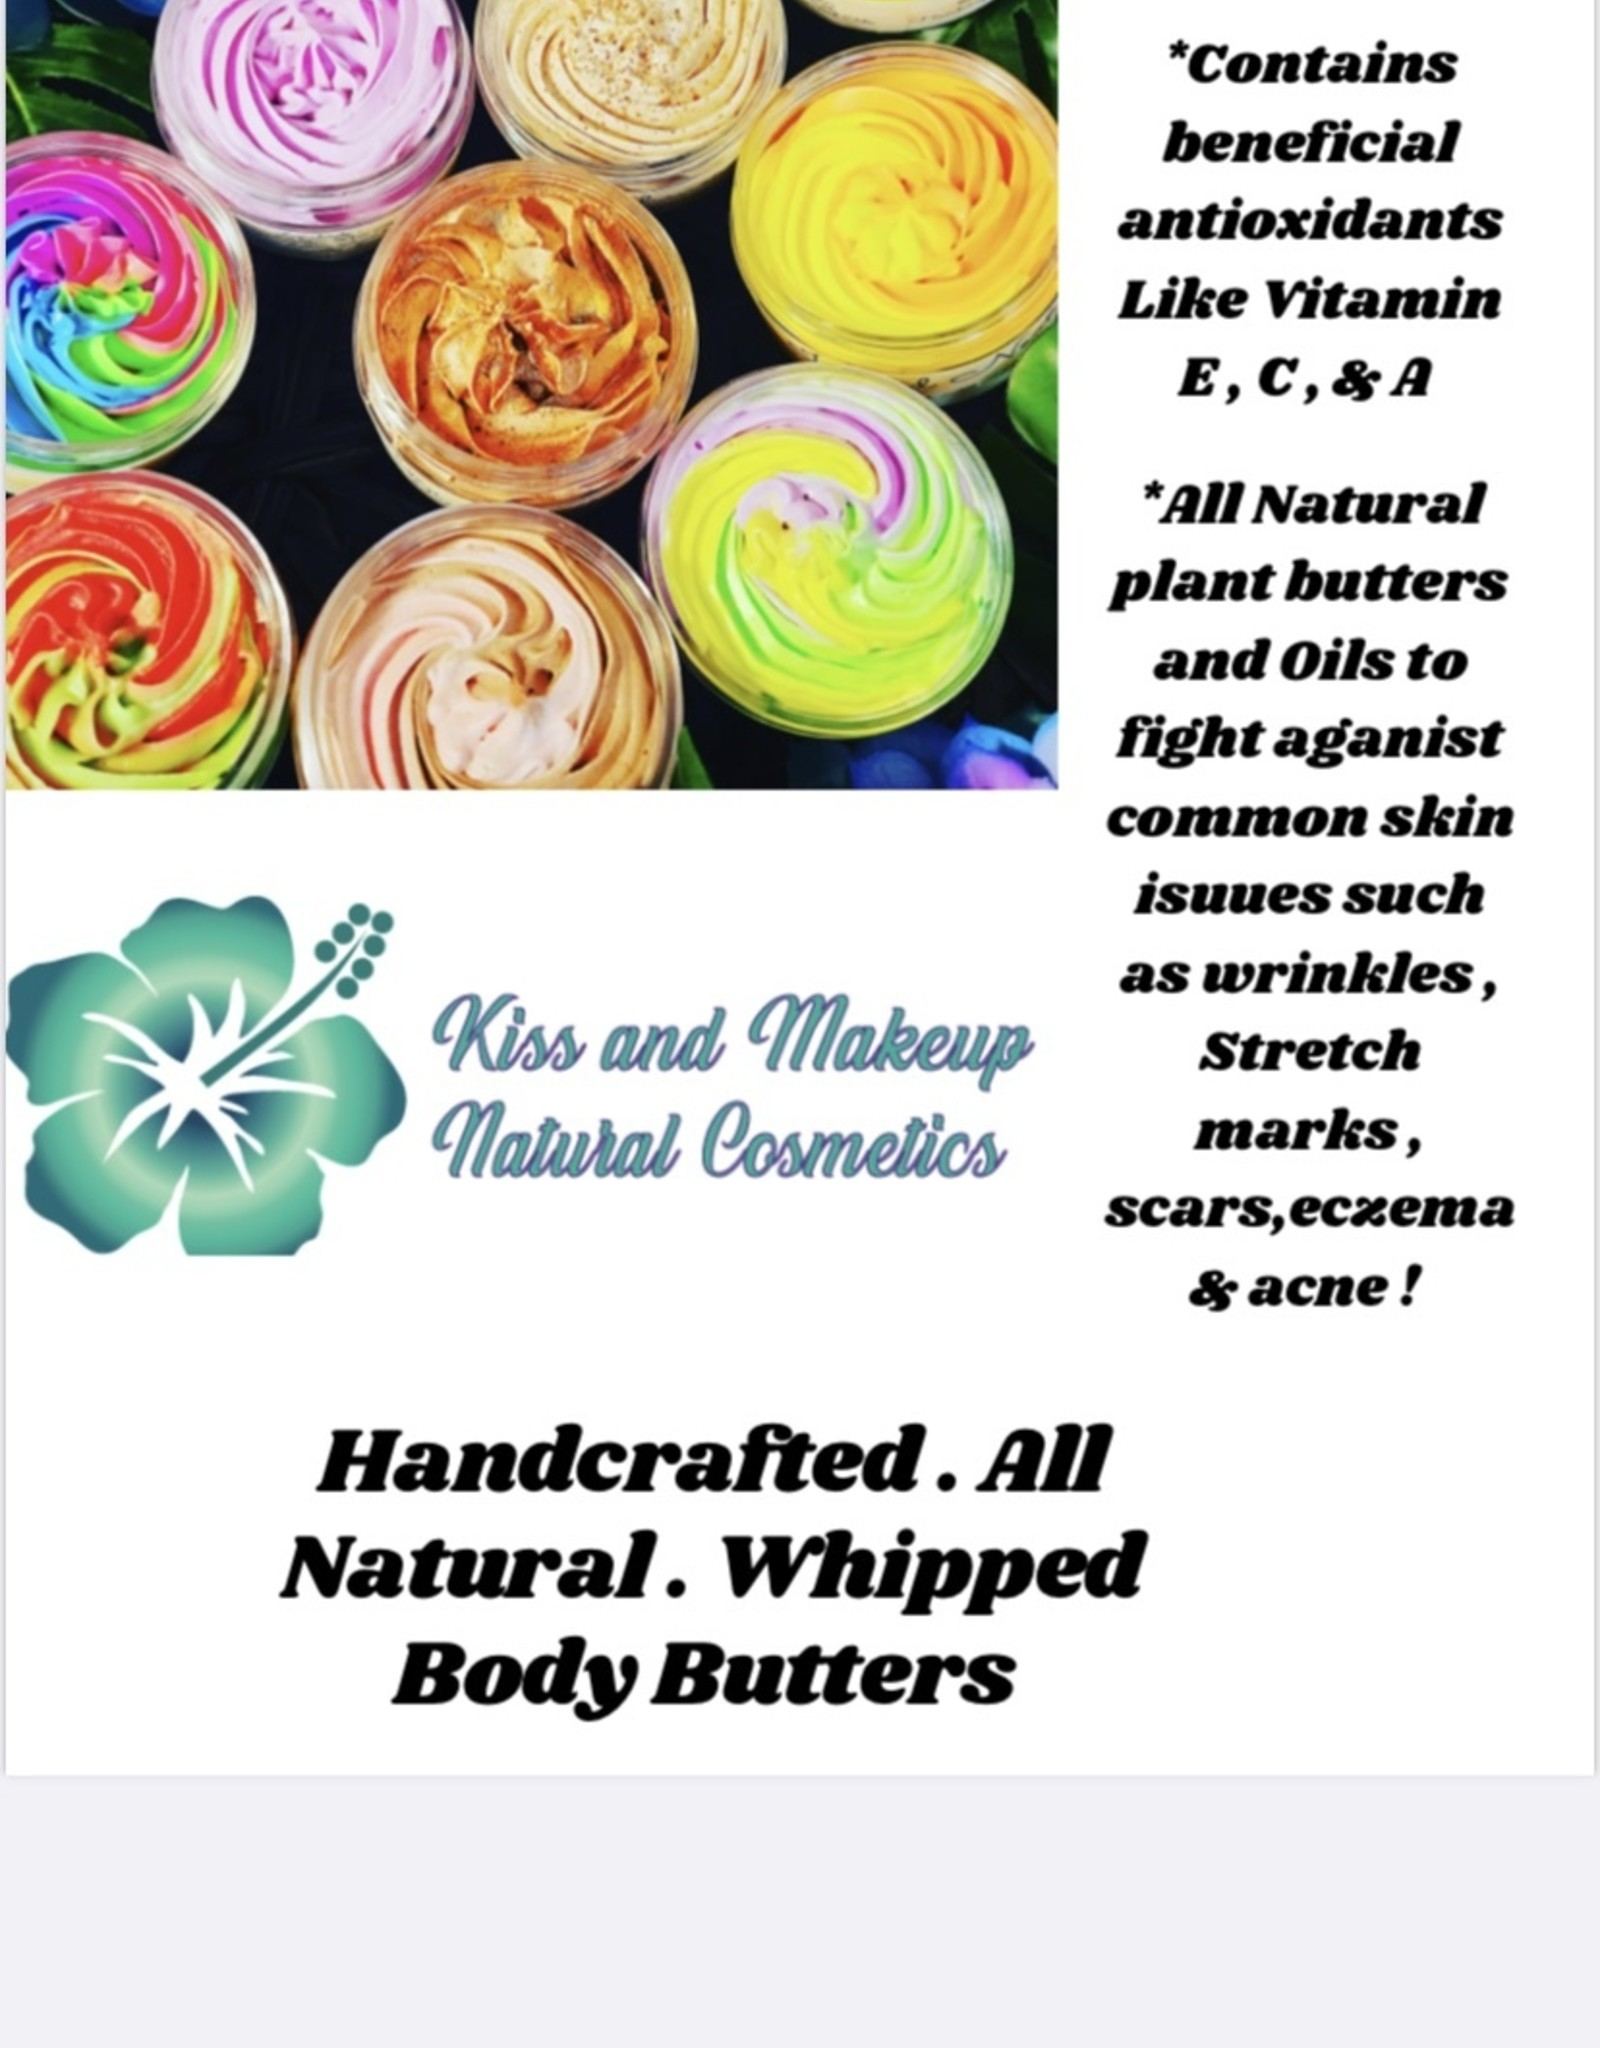 Whipped All Natural Body Butter/Tighten Firm-4oz Guava Berries